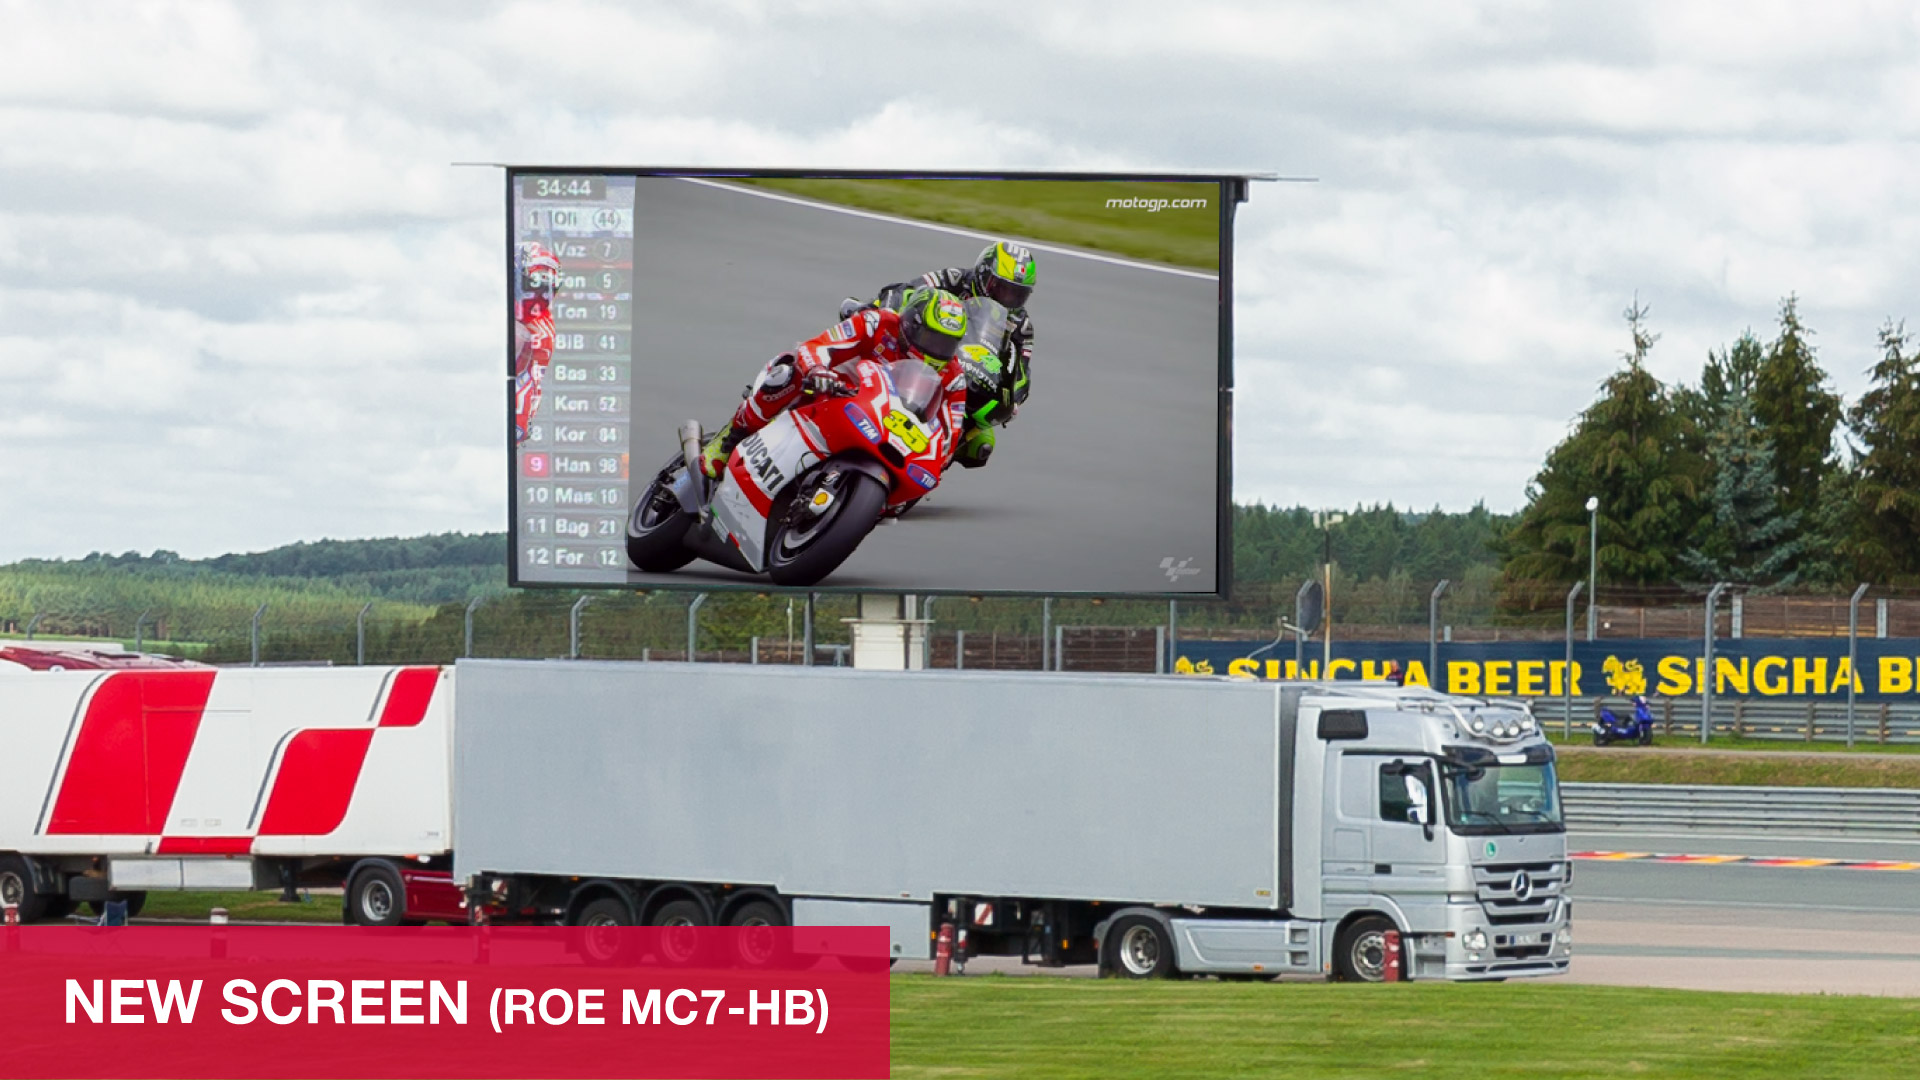 PRG´s 50m² LED truck now has a new, even better screen (ROE MC7-HB)